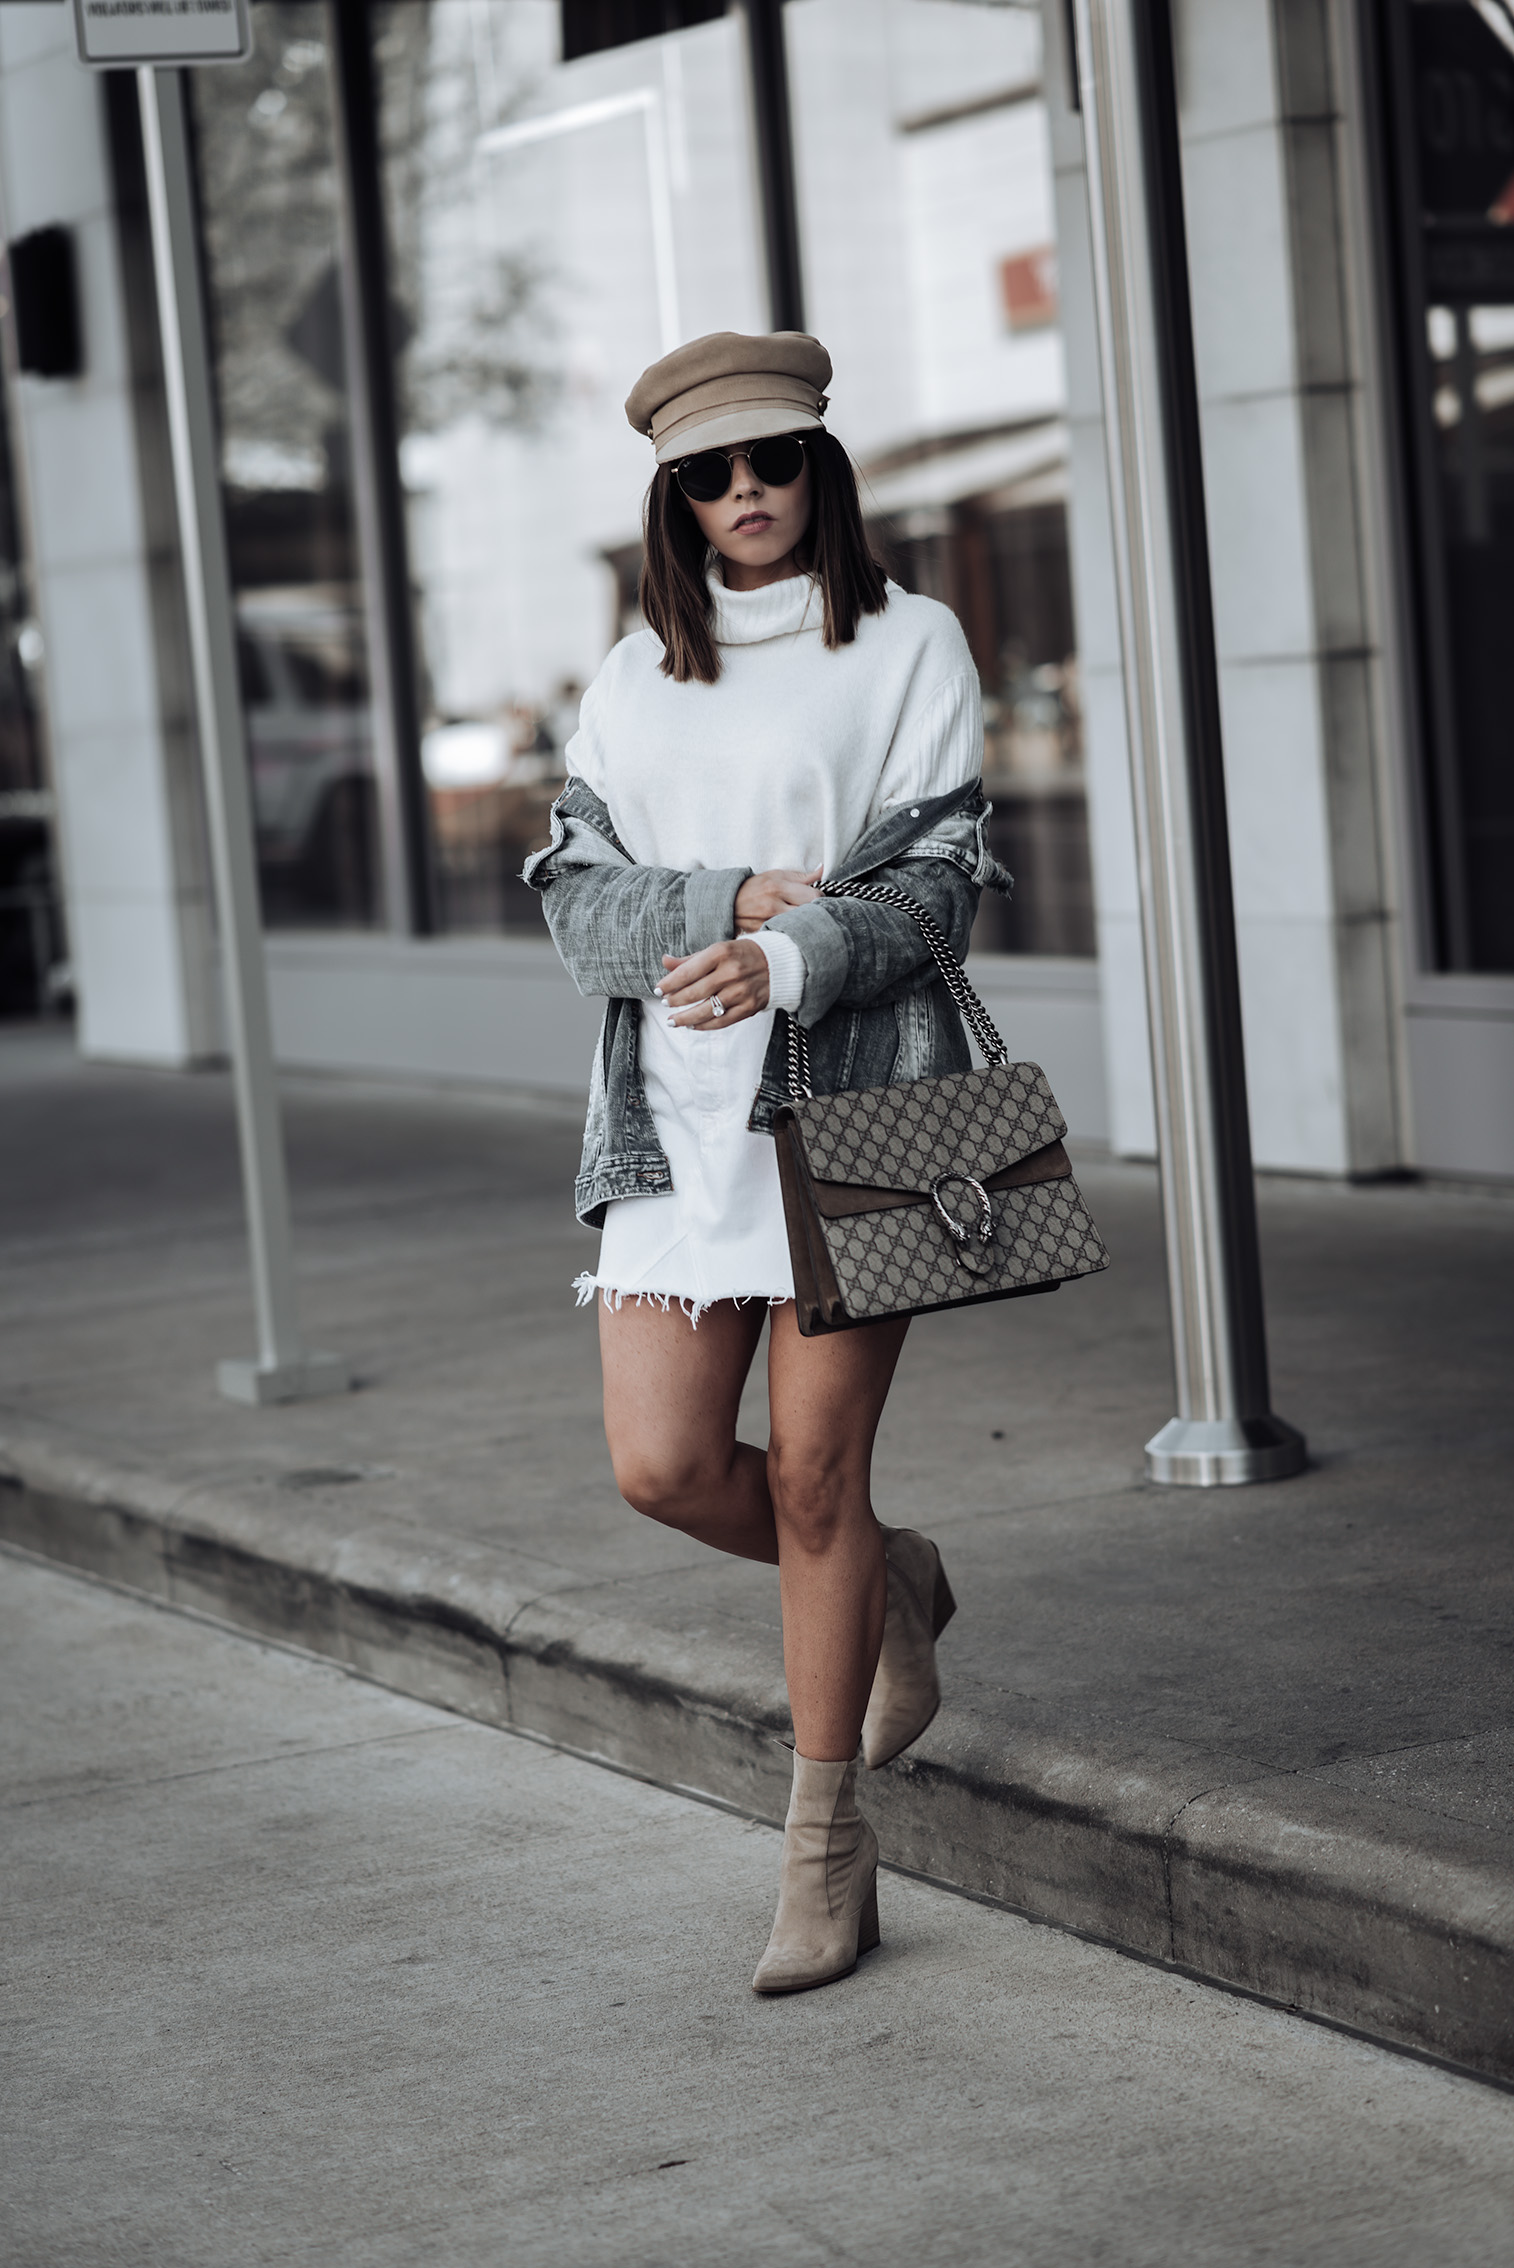 Oversized denim jacket | Tiffany Jais fashion and lifestyle blogger of Flaunt and Center | Houston fashion blogger | Straw handbag Trend | Streetstyle blog #streetstyle